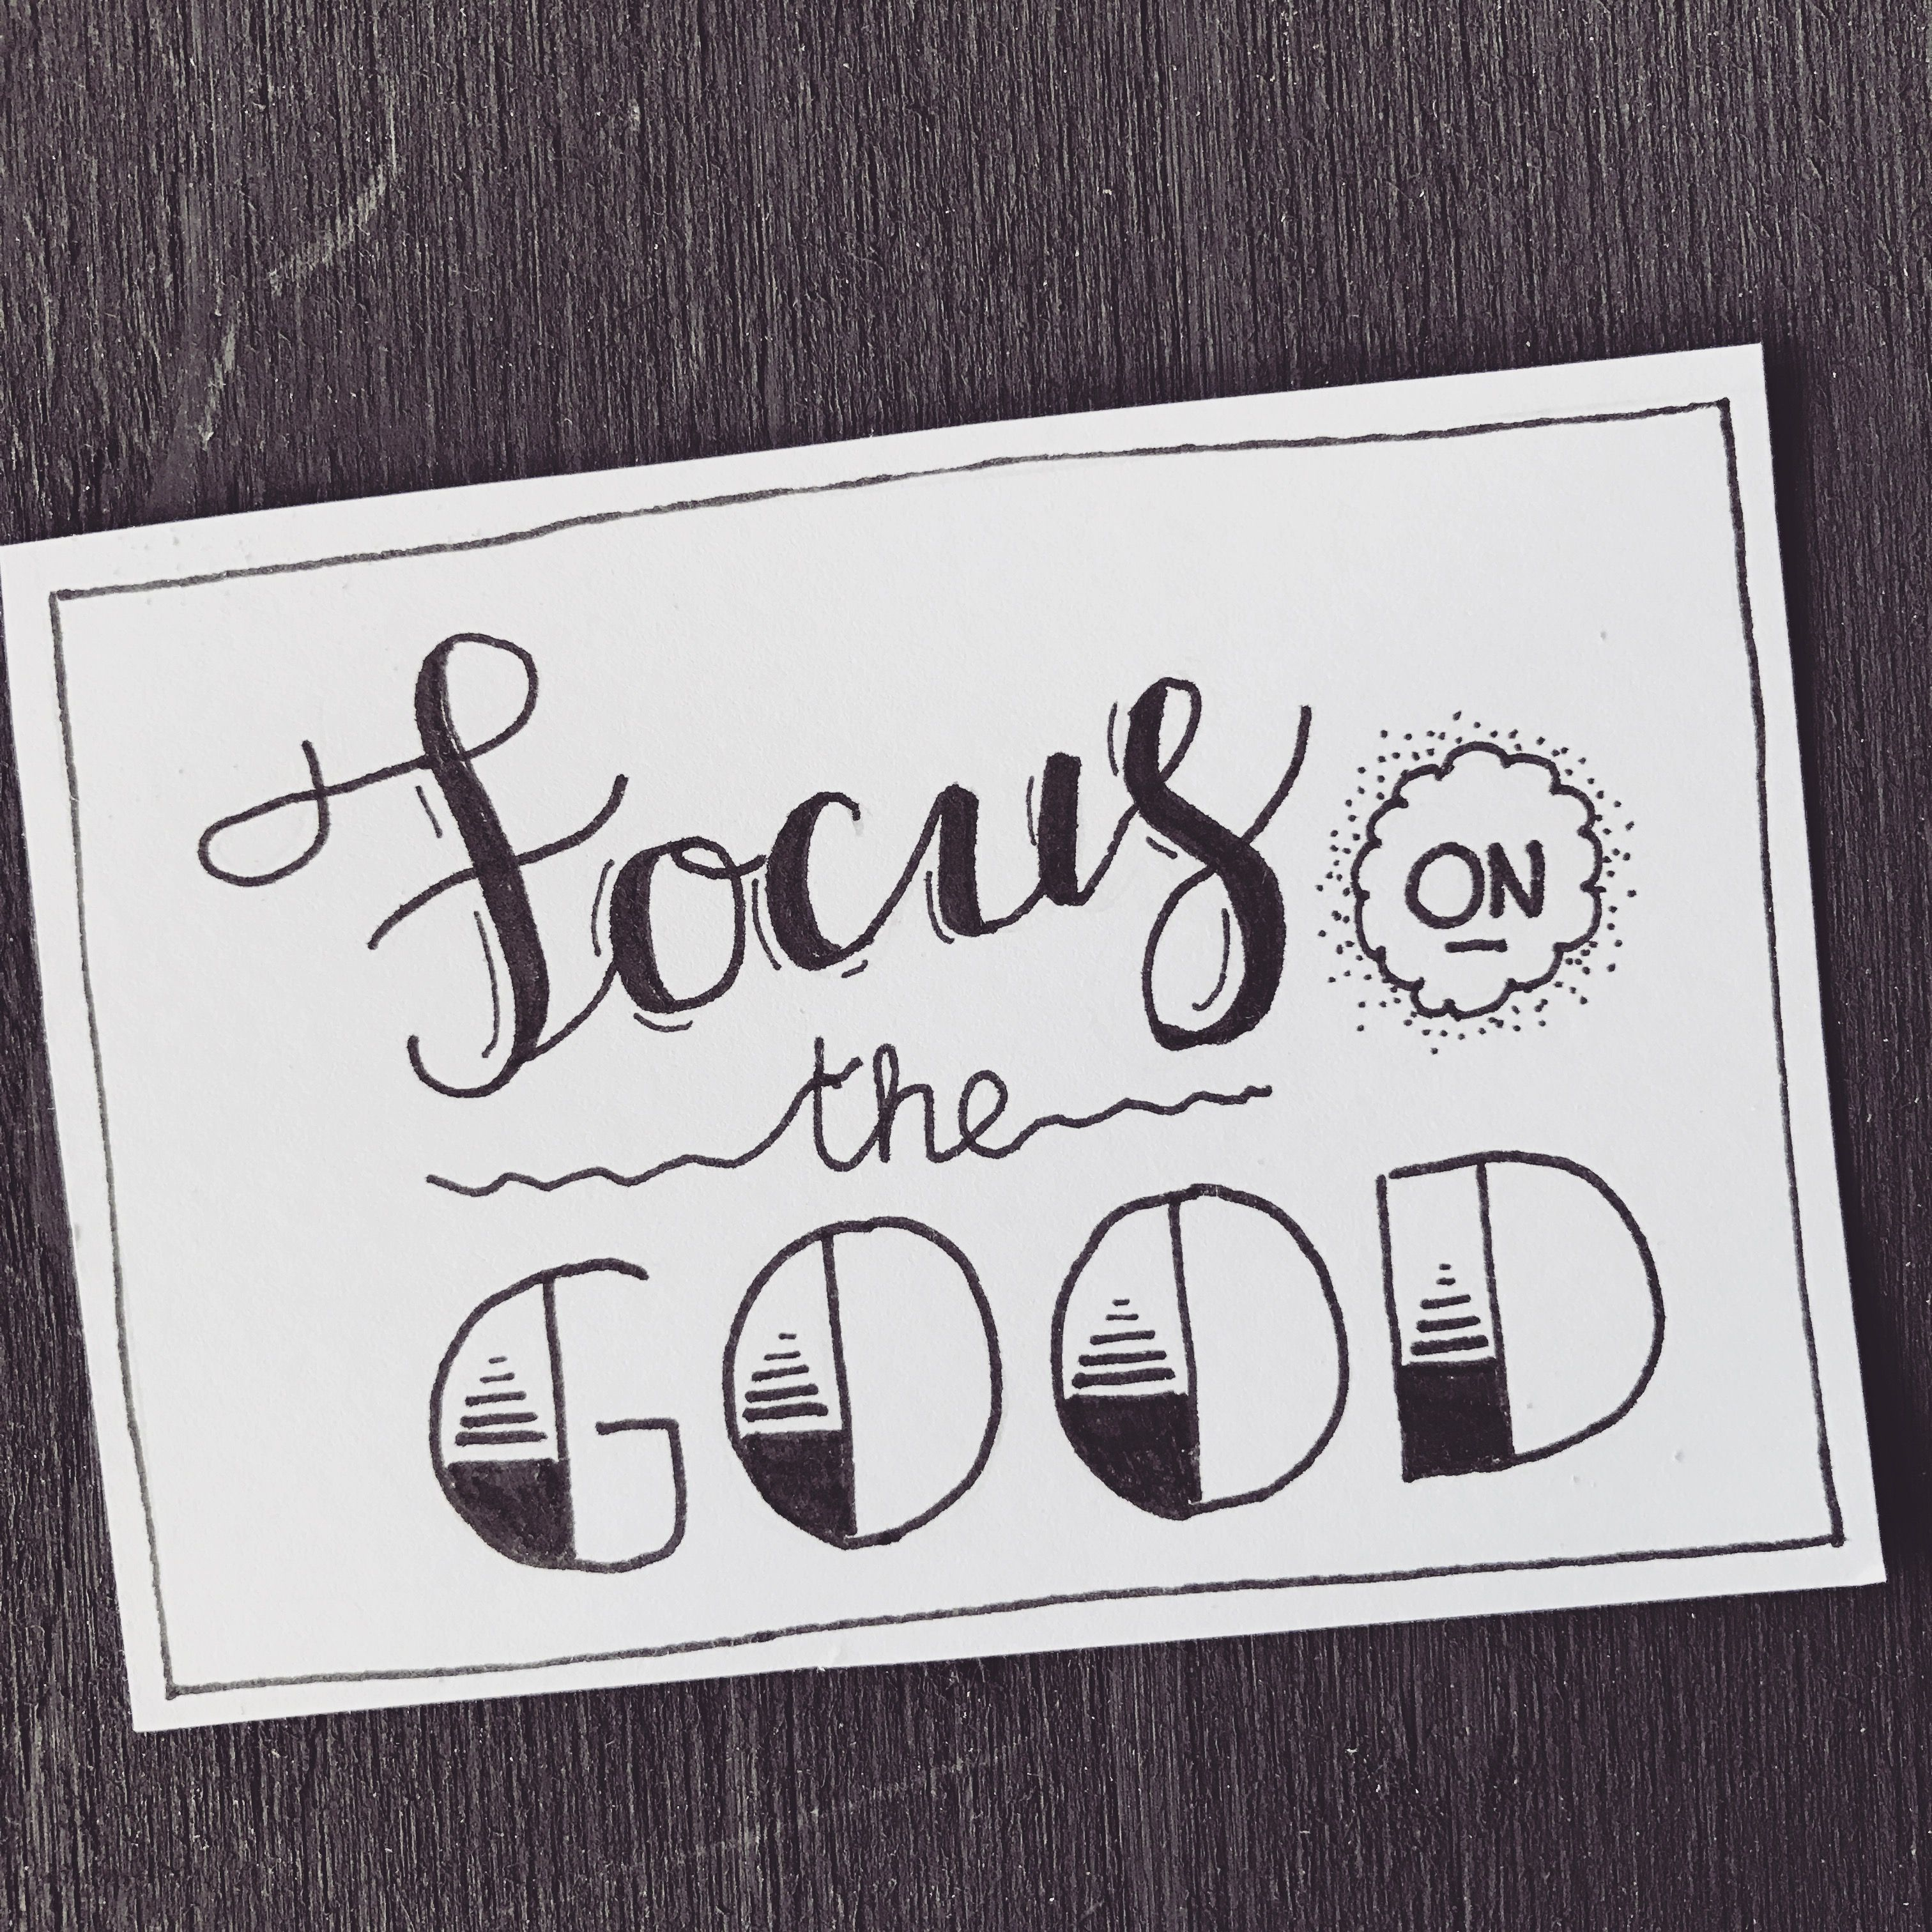 Pin by Desi Amelia on Tulis | Calligraphy quotes, Drawing ...